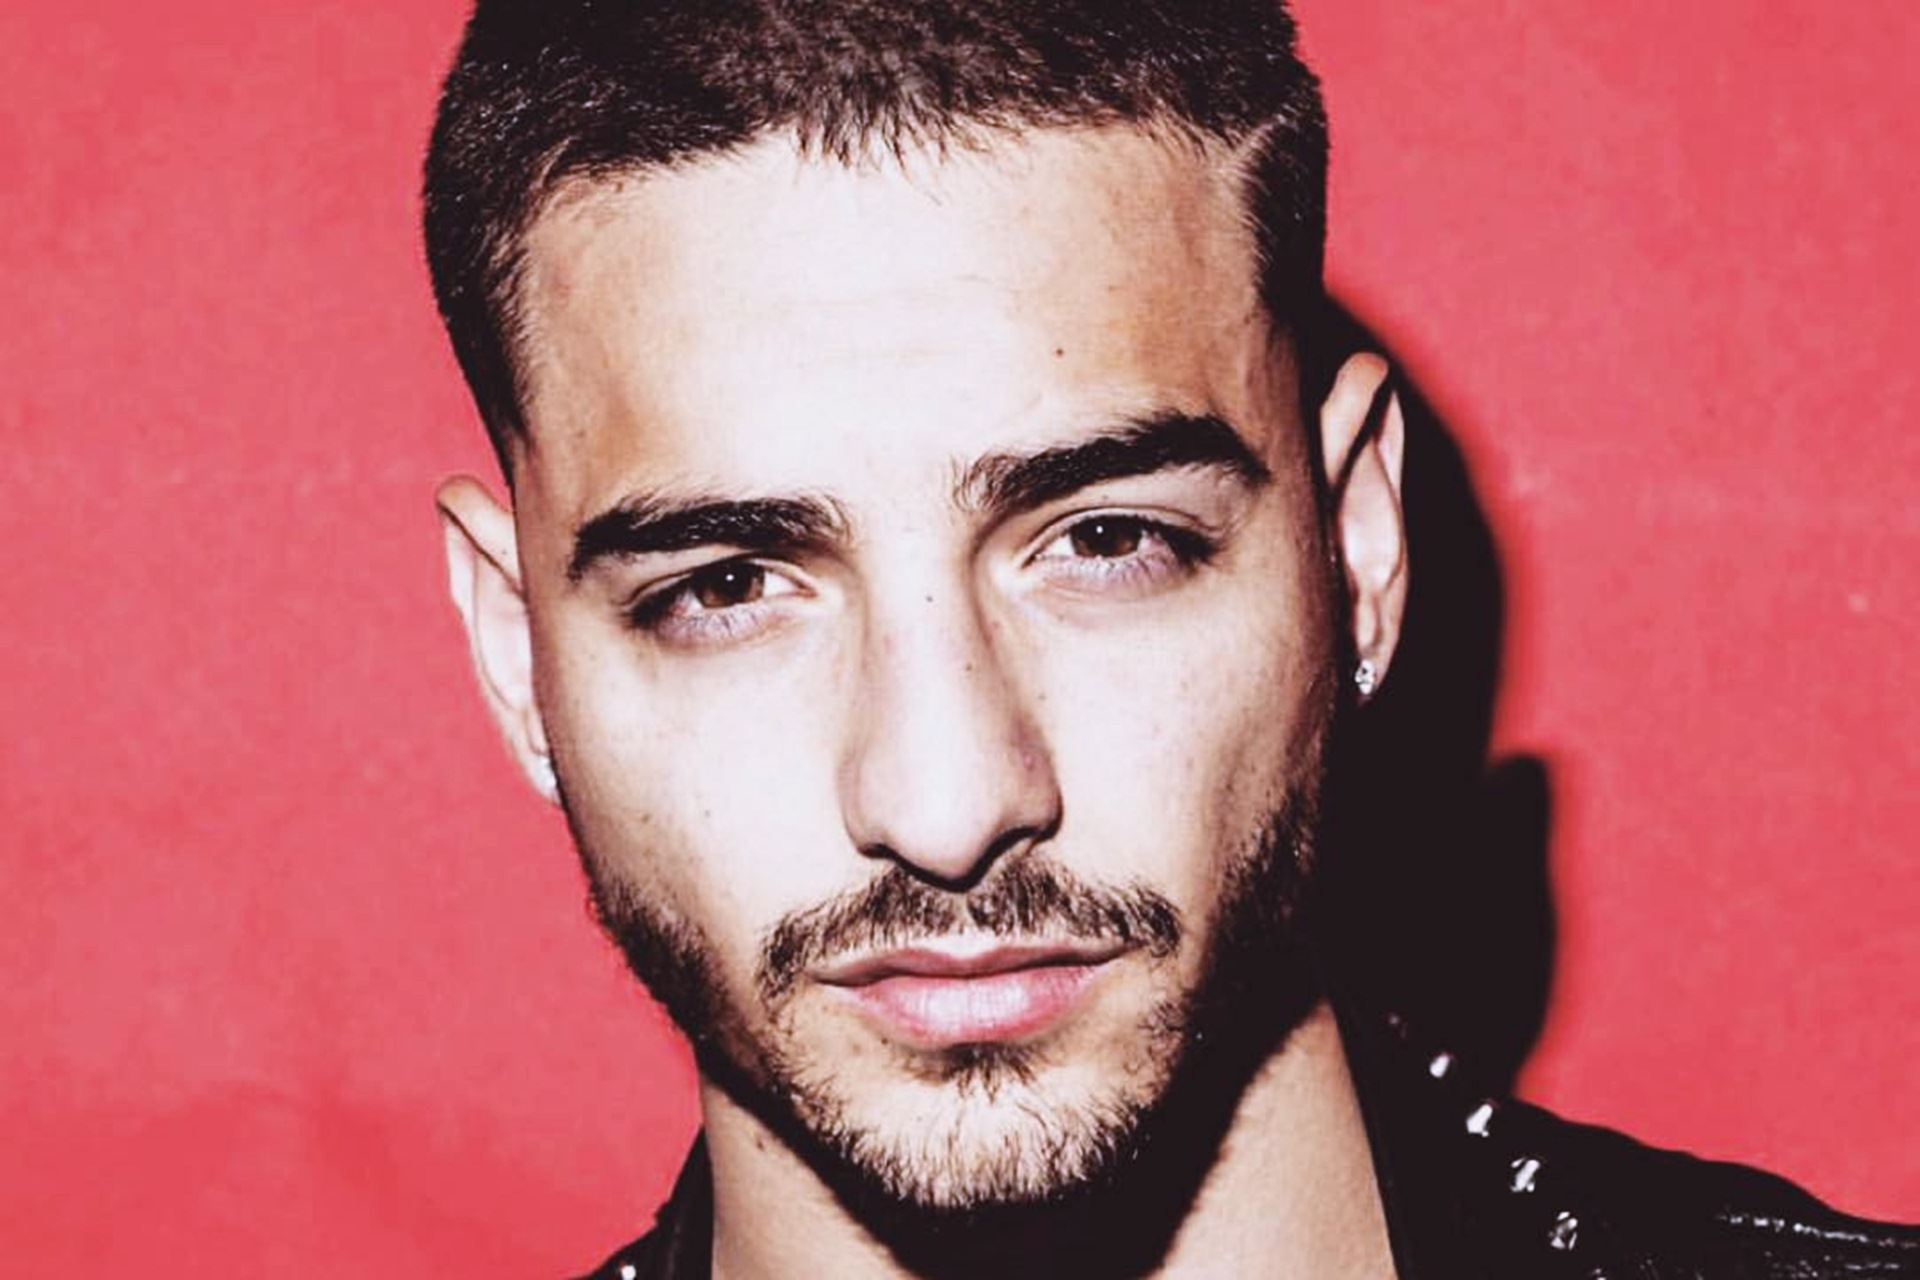 Samsung Mobile Hd Wallpapers Free Download Maluma Face Wallpaper 22632 Baltana